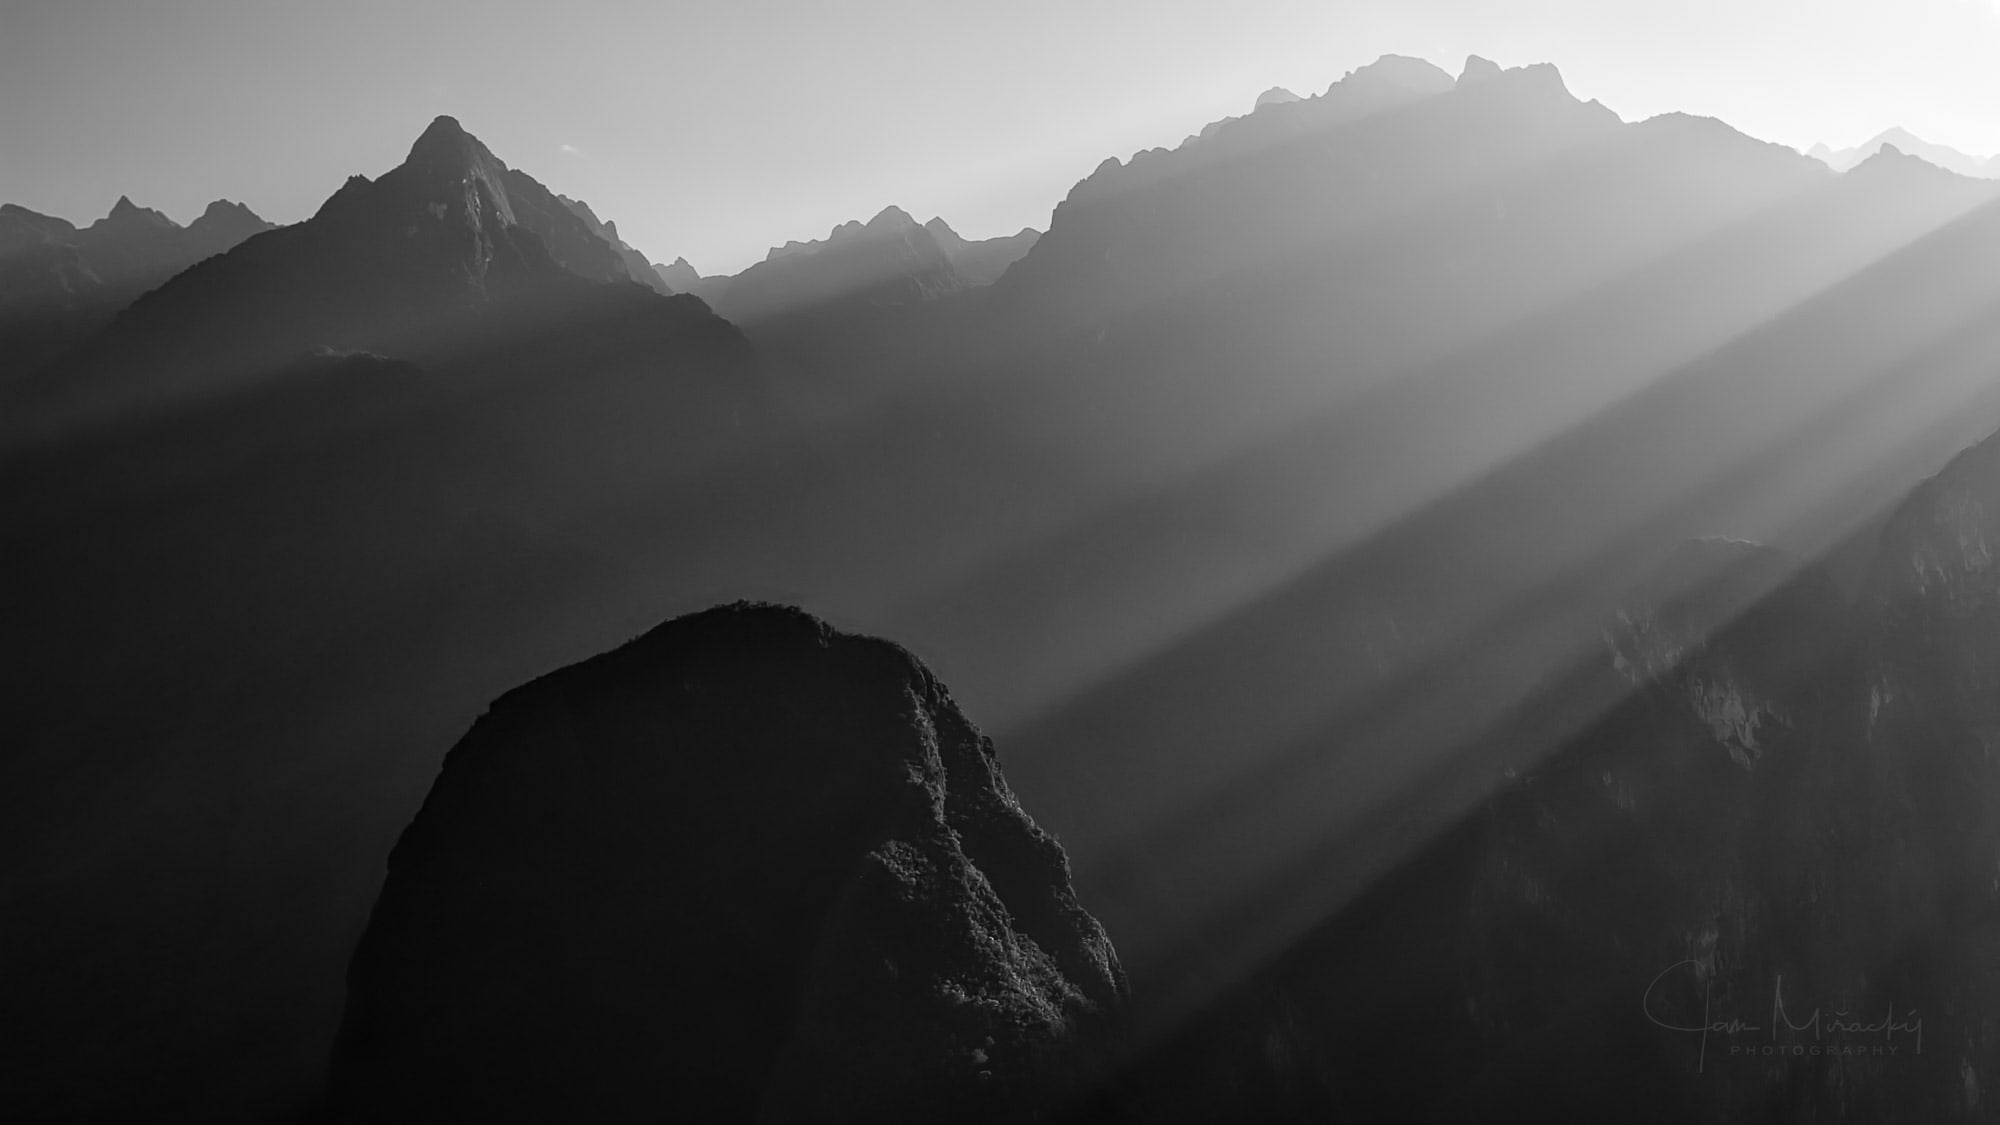 Morning sunbeams illuminating hills around Machu Picchu